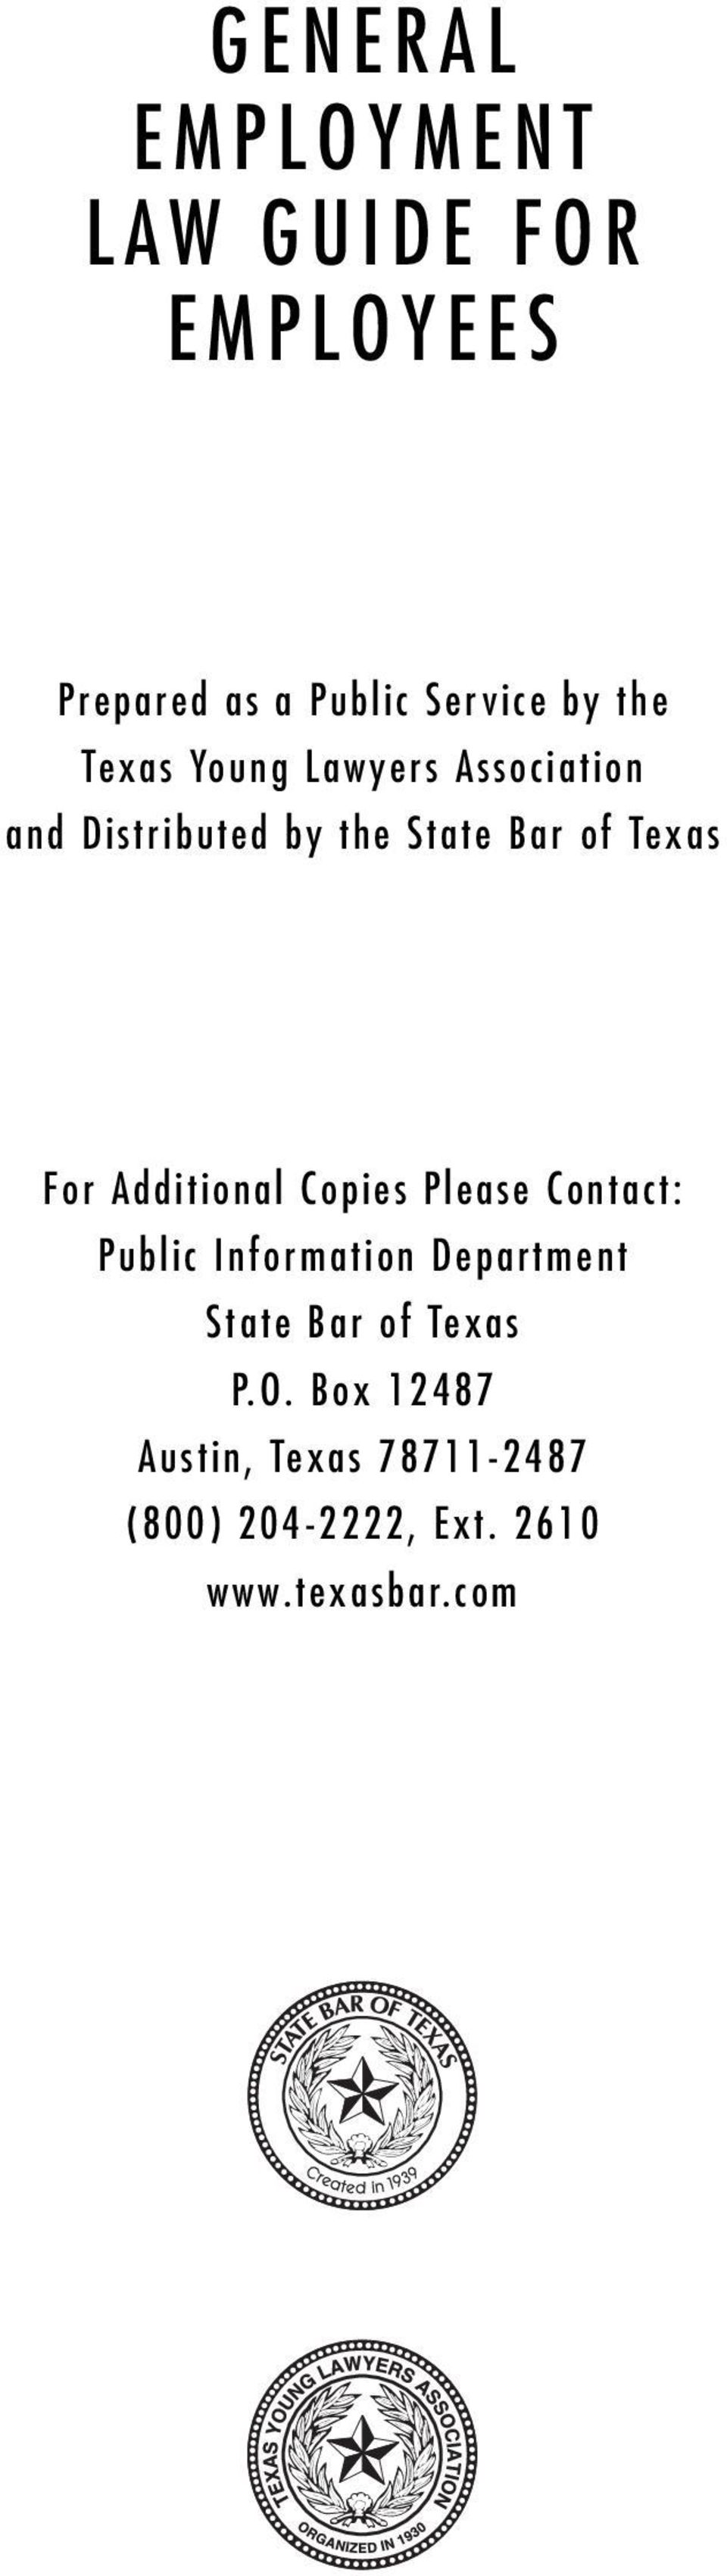 Additional Copies Please Contact: Public Information Department State Bar of